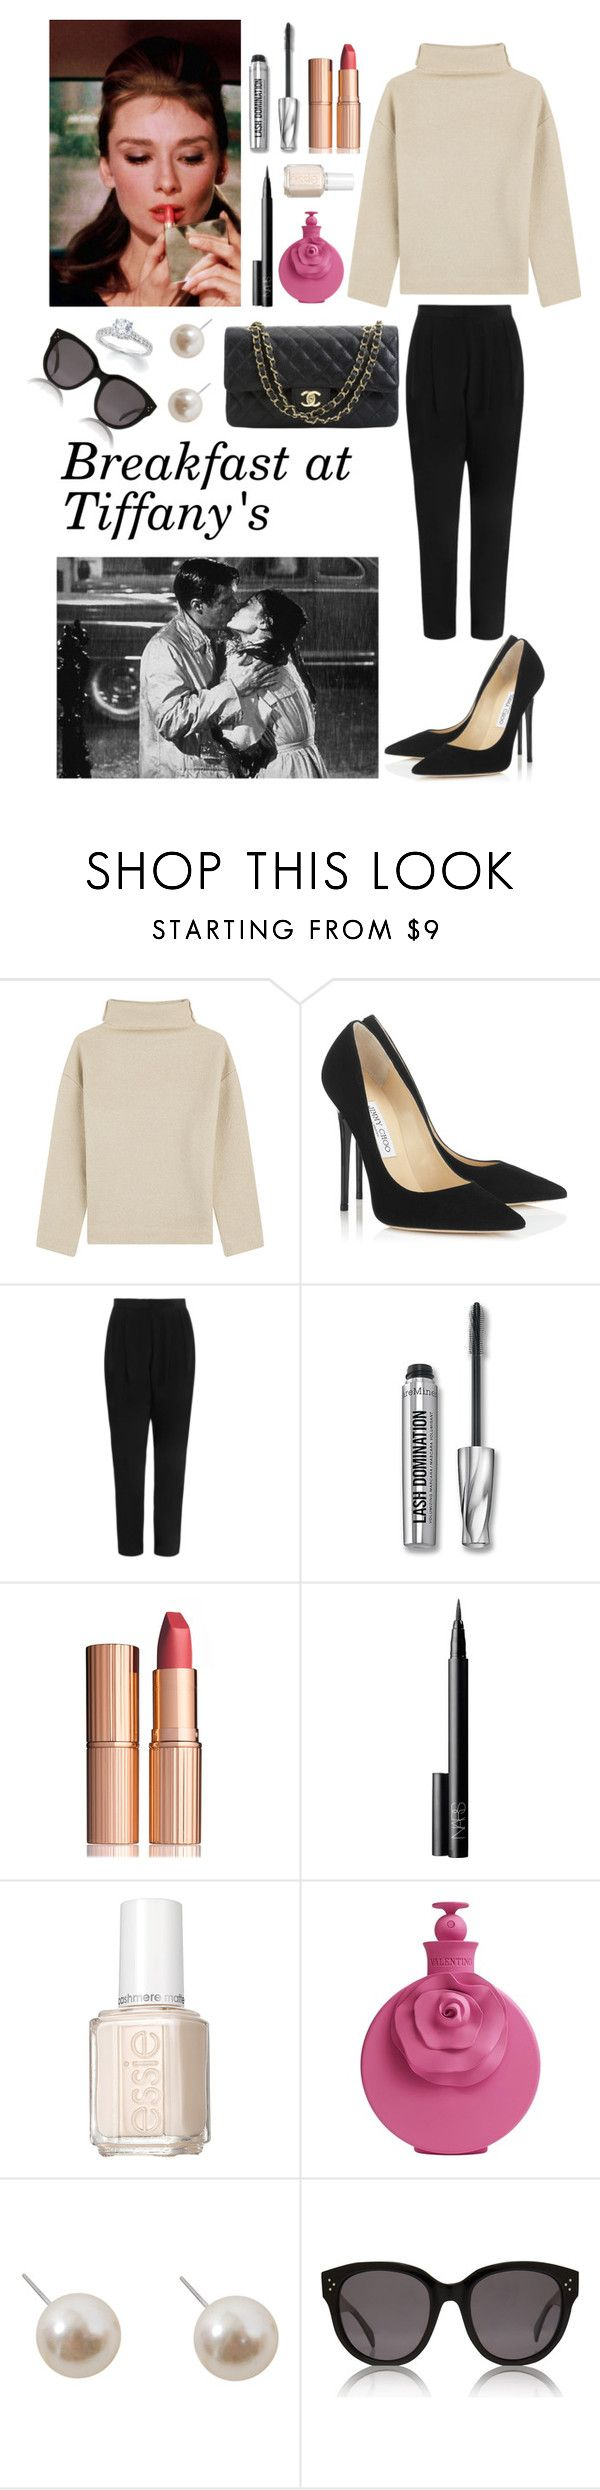 Holly Golightly (Breakfast at Tiffanys) inspired look by mariancoviella on Polyvore featuring Étoile Isabel Marant, Zimmermann, Jimmy Choo, Humble Chic, CÉLINE, Charlotte Tilbury, NARS Cosmetics, Valentino, Essie and Bare Escentuals